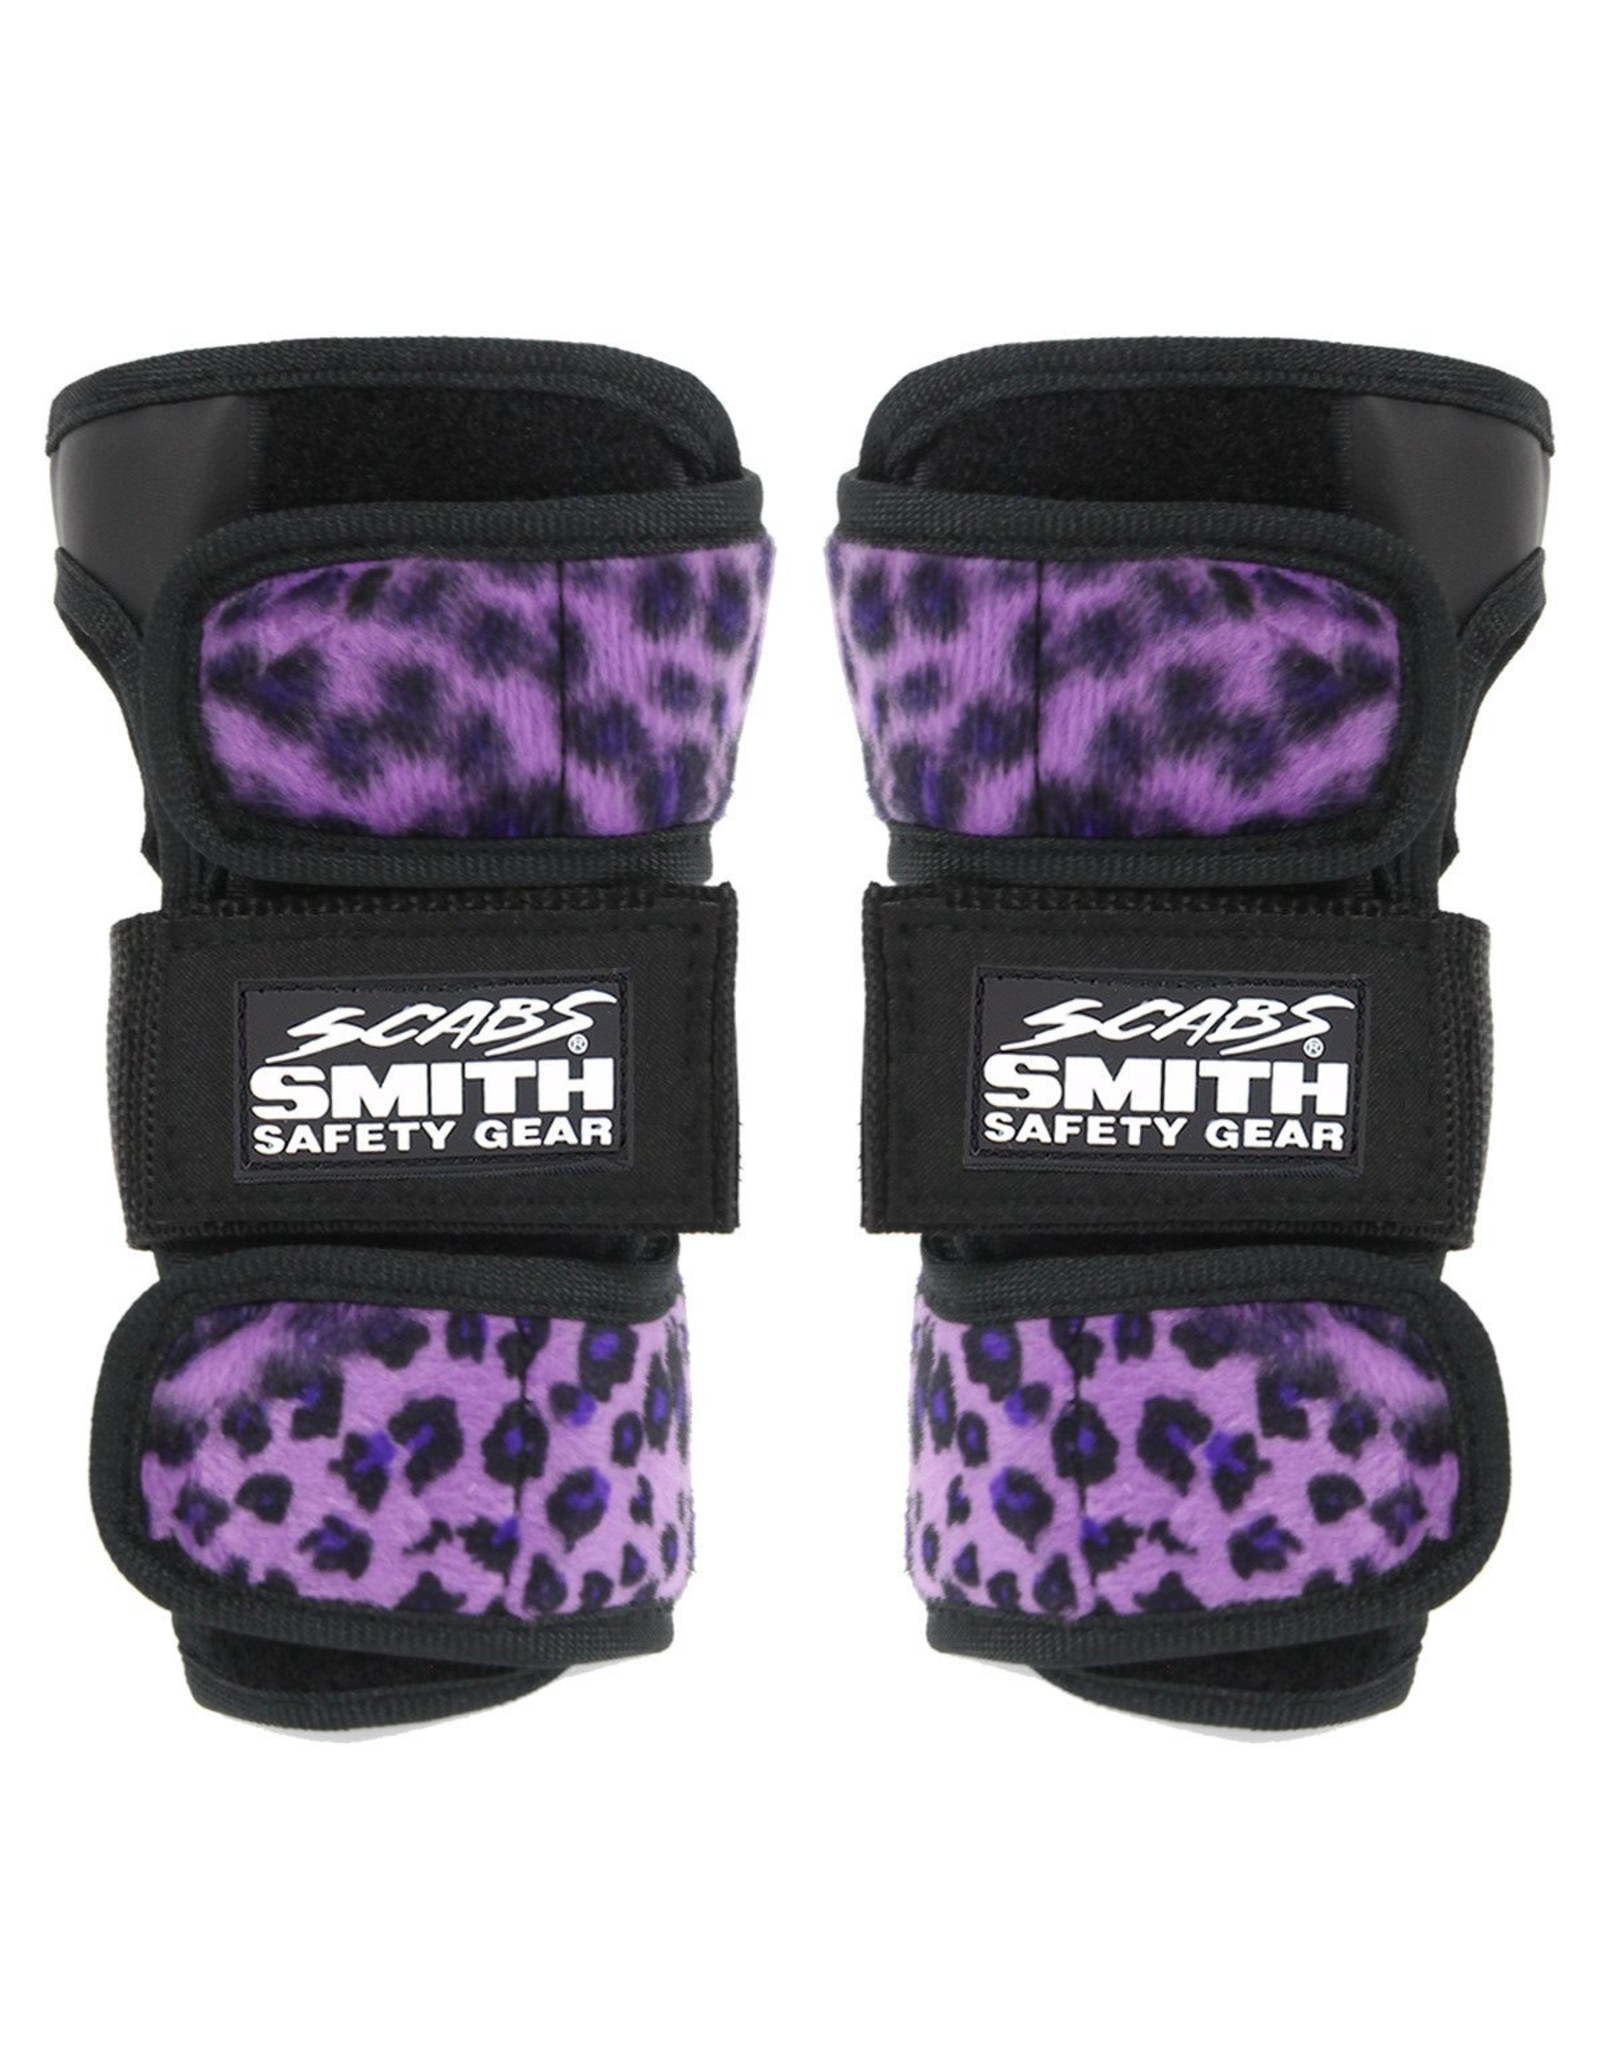 Smith Scabs Leopard Wrist Guards